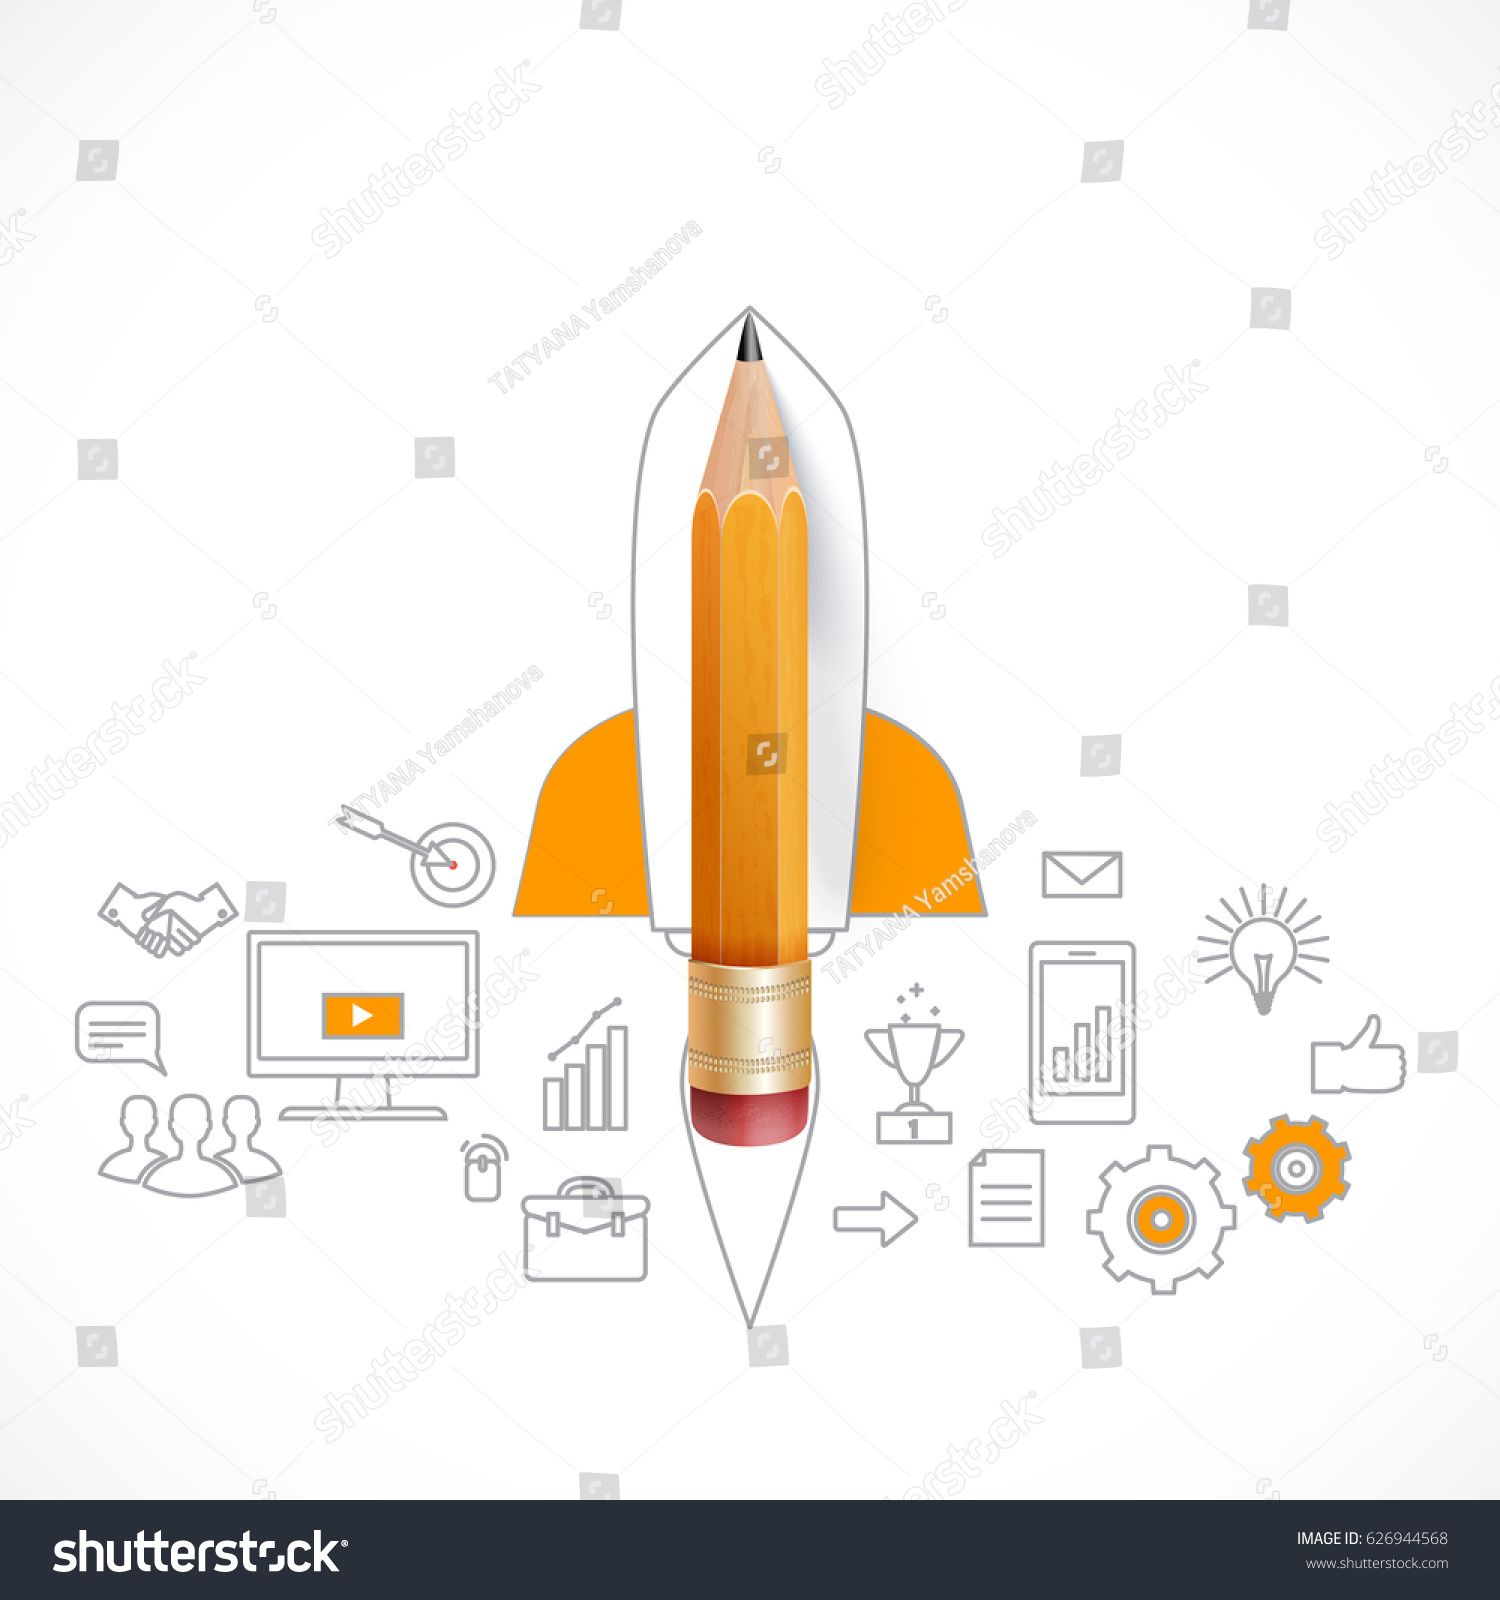 real rocket ship diagram battery isolator switch wiring smart education launch pencil stock vector royalty free with sketch on the blackboard illustration